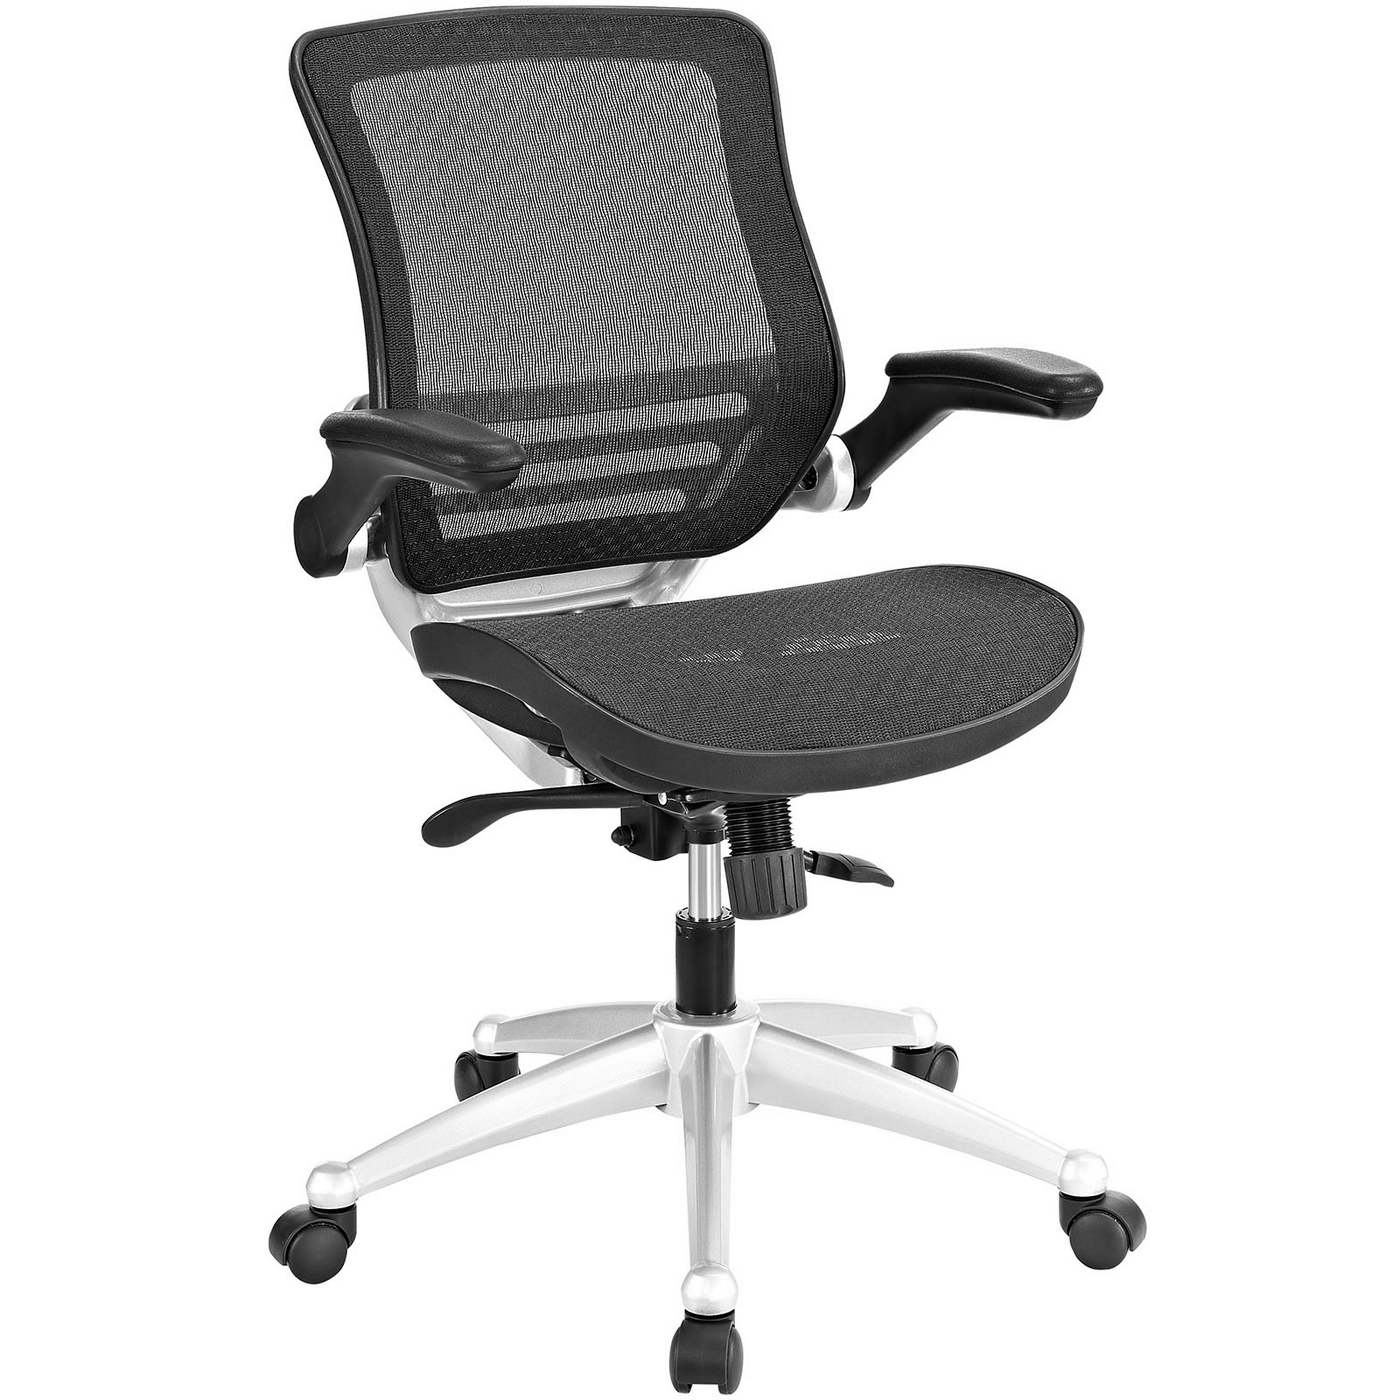 Mesh Ergonomic Office Chair Edge Modern Ergonomic Mesh Office Chair W Padded Vinyl